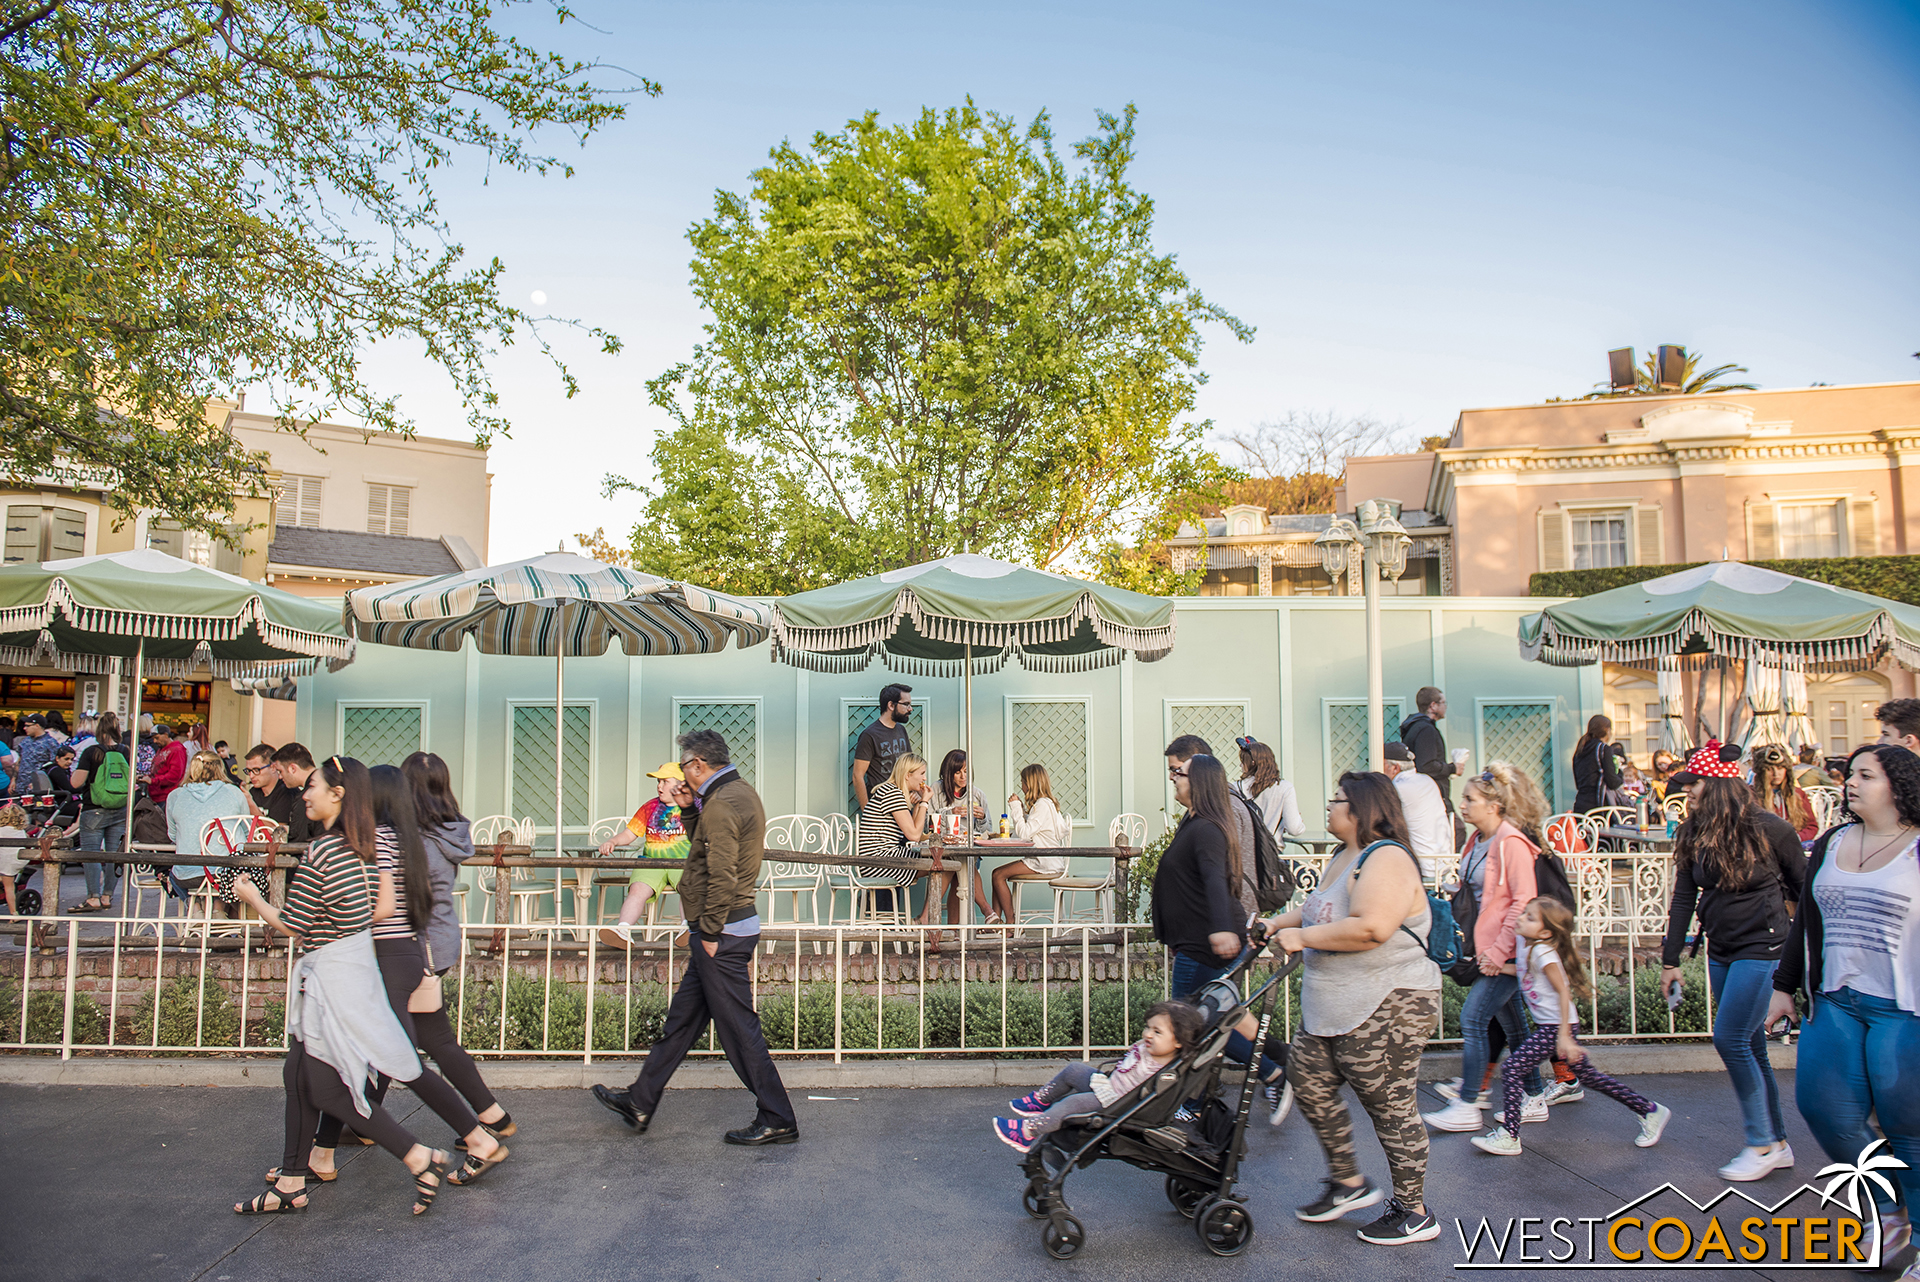 Work walls are up around a small section of the dining area outside Stage Door Cafe.